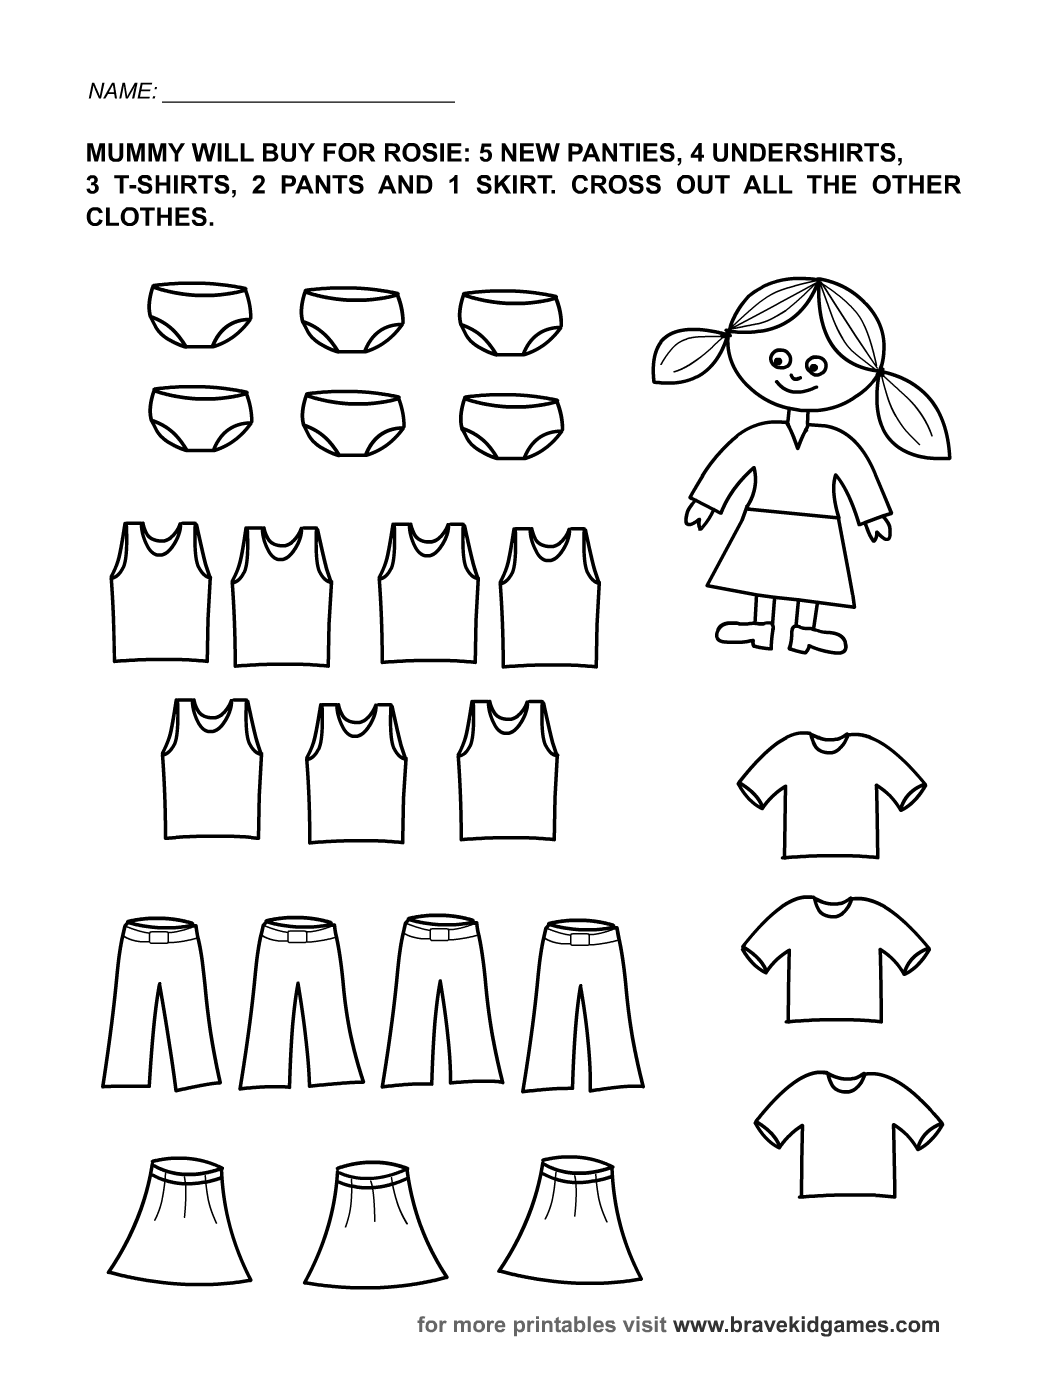 printables kids work sheets 1000 images about toddler worksheets on pinterest alphabet preschool and preschool - Kids Activity Printables